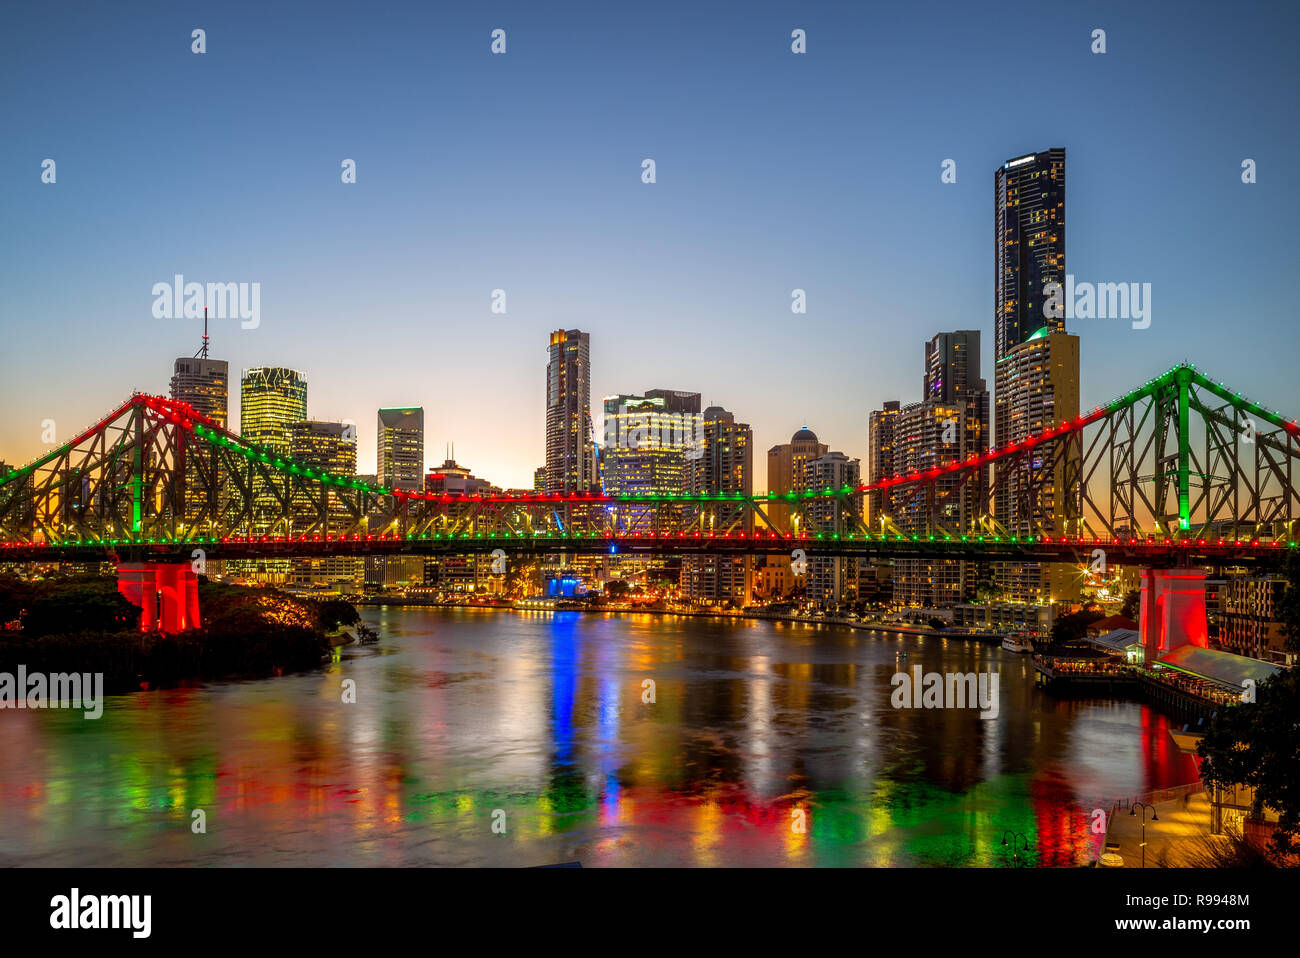 brisbane with story bridge in australia at night - Stock Image